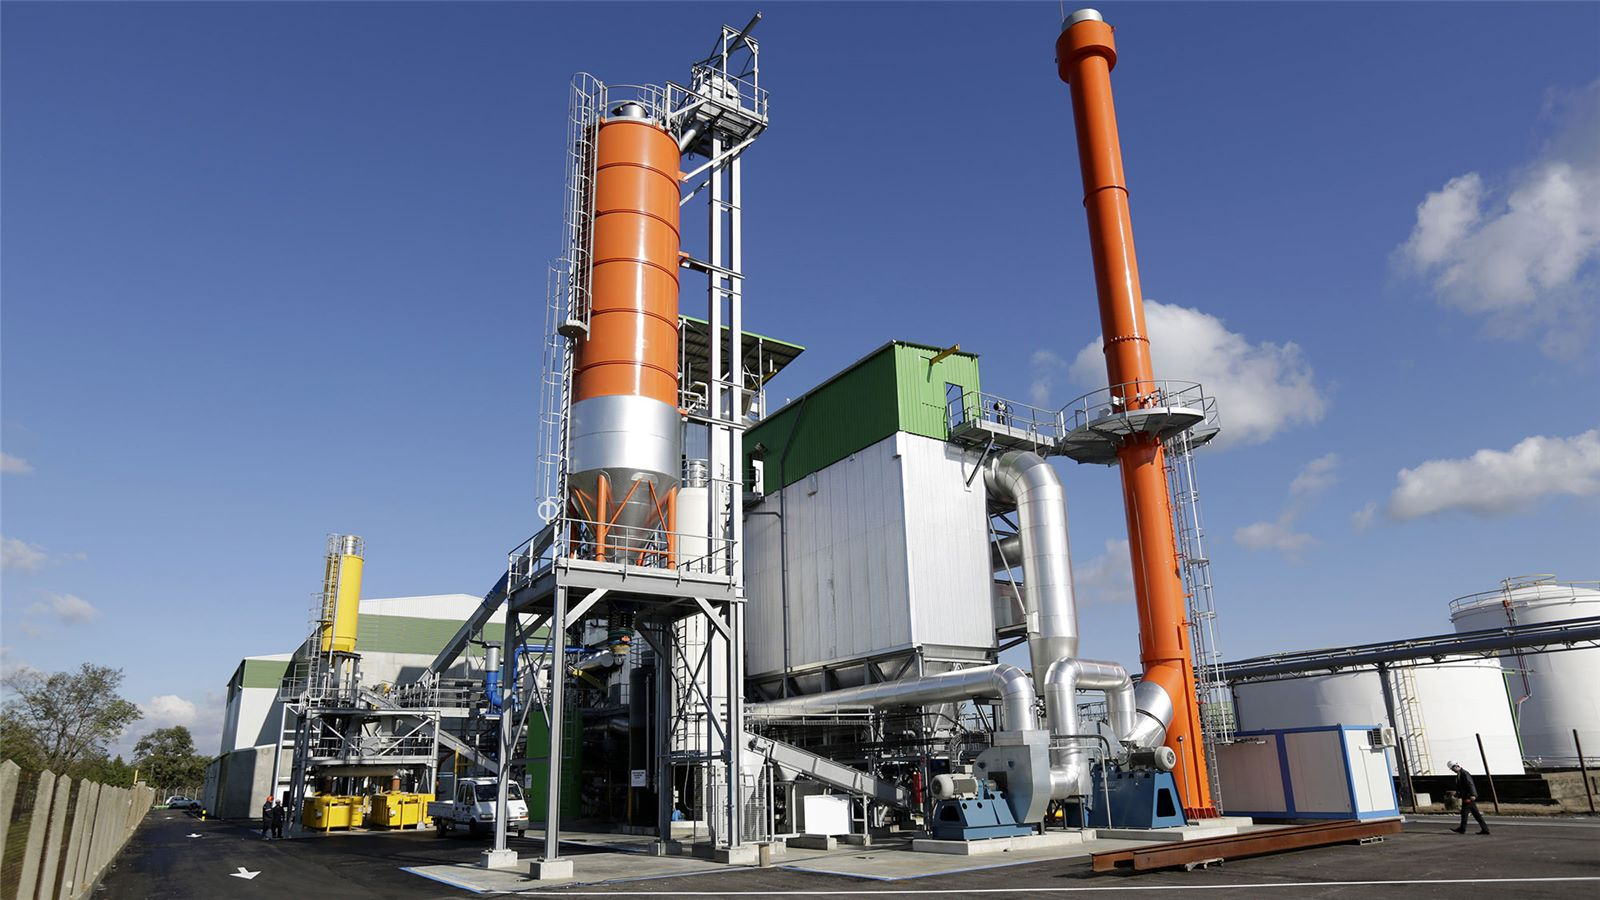 Robin roussillon chemical platform energy from waste